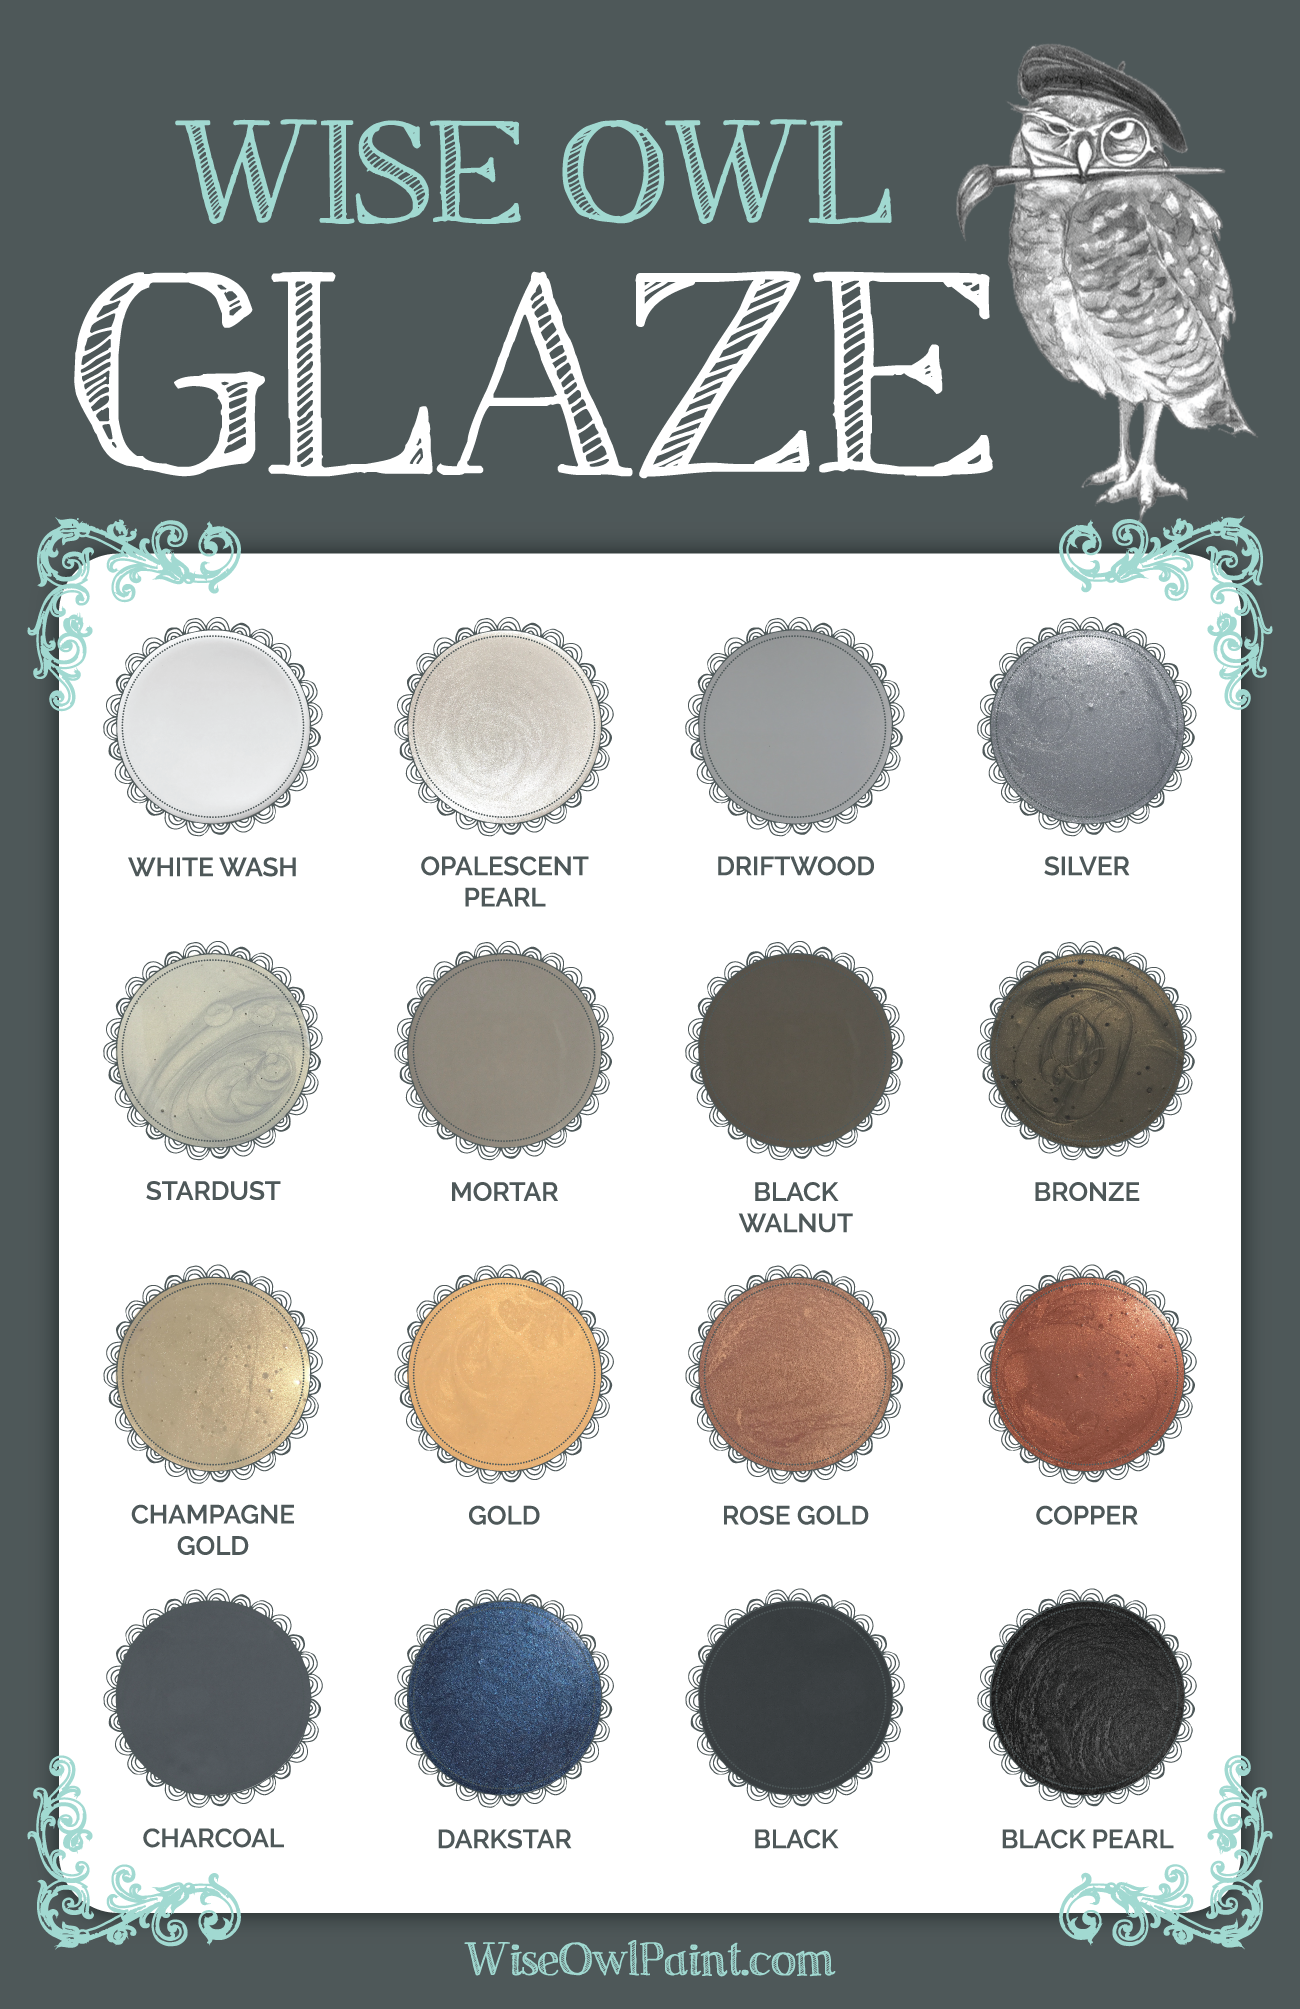 Glaze archives wise owl chalk synthesis paint check out our blog on glazing for more tips on applying glaze here nvjuhfo Images